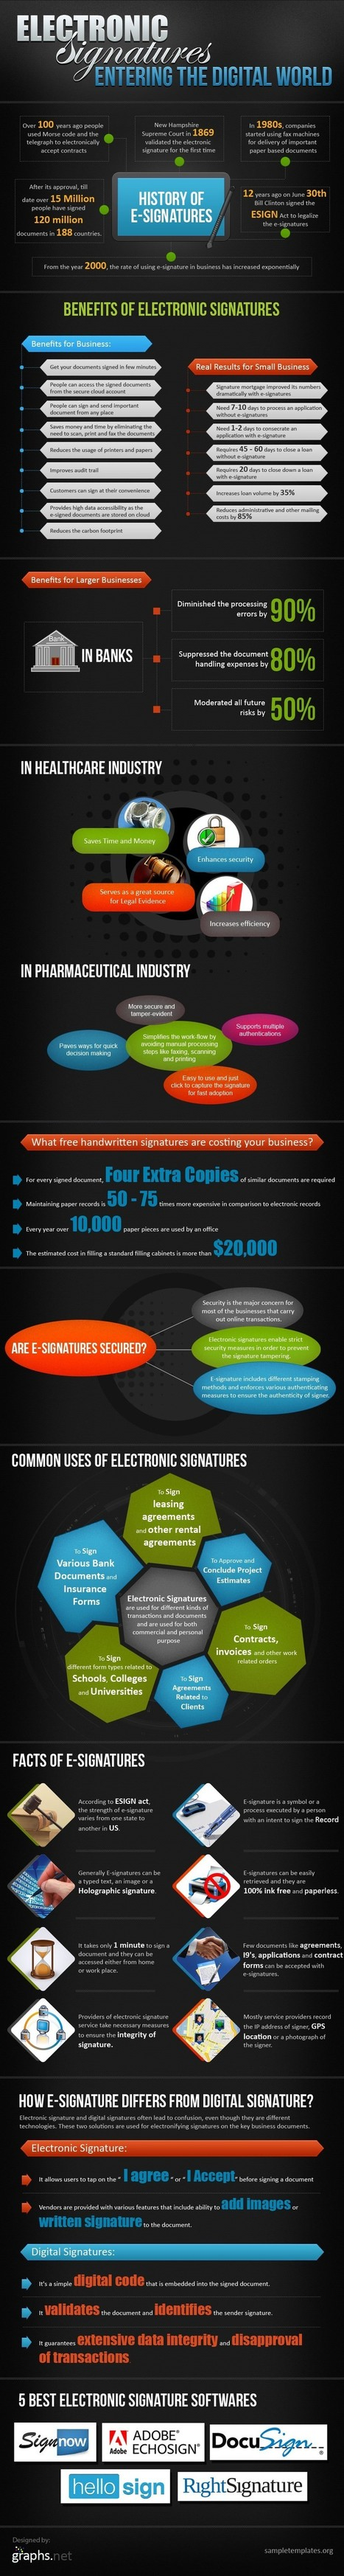 50+ Advantages of Using Electronic Signatures | All Infographics | Politically Incorrect | Scoop.it